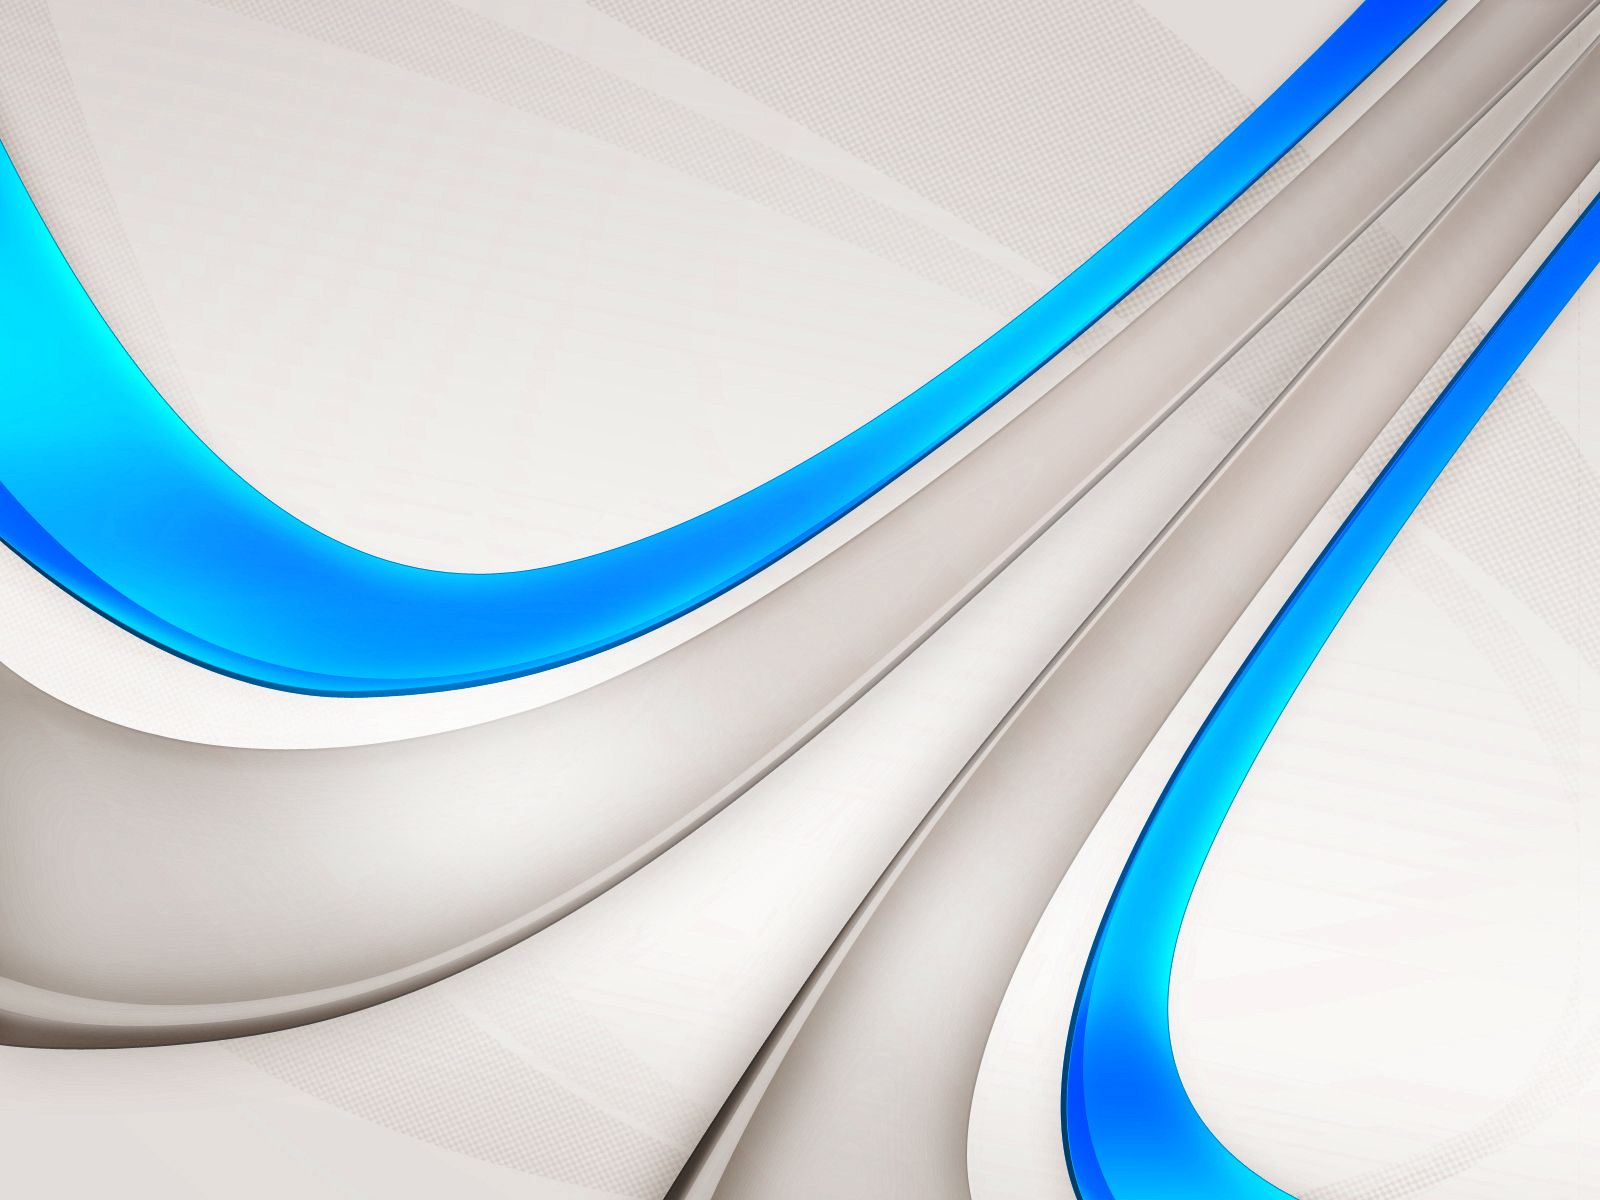 White And Blue Abstract Wallpaper On Wallpaper 1080p Hd Abstract Wallpaper Blue Wallpapers Blue And White Wallpaper